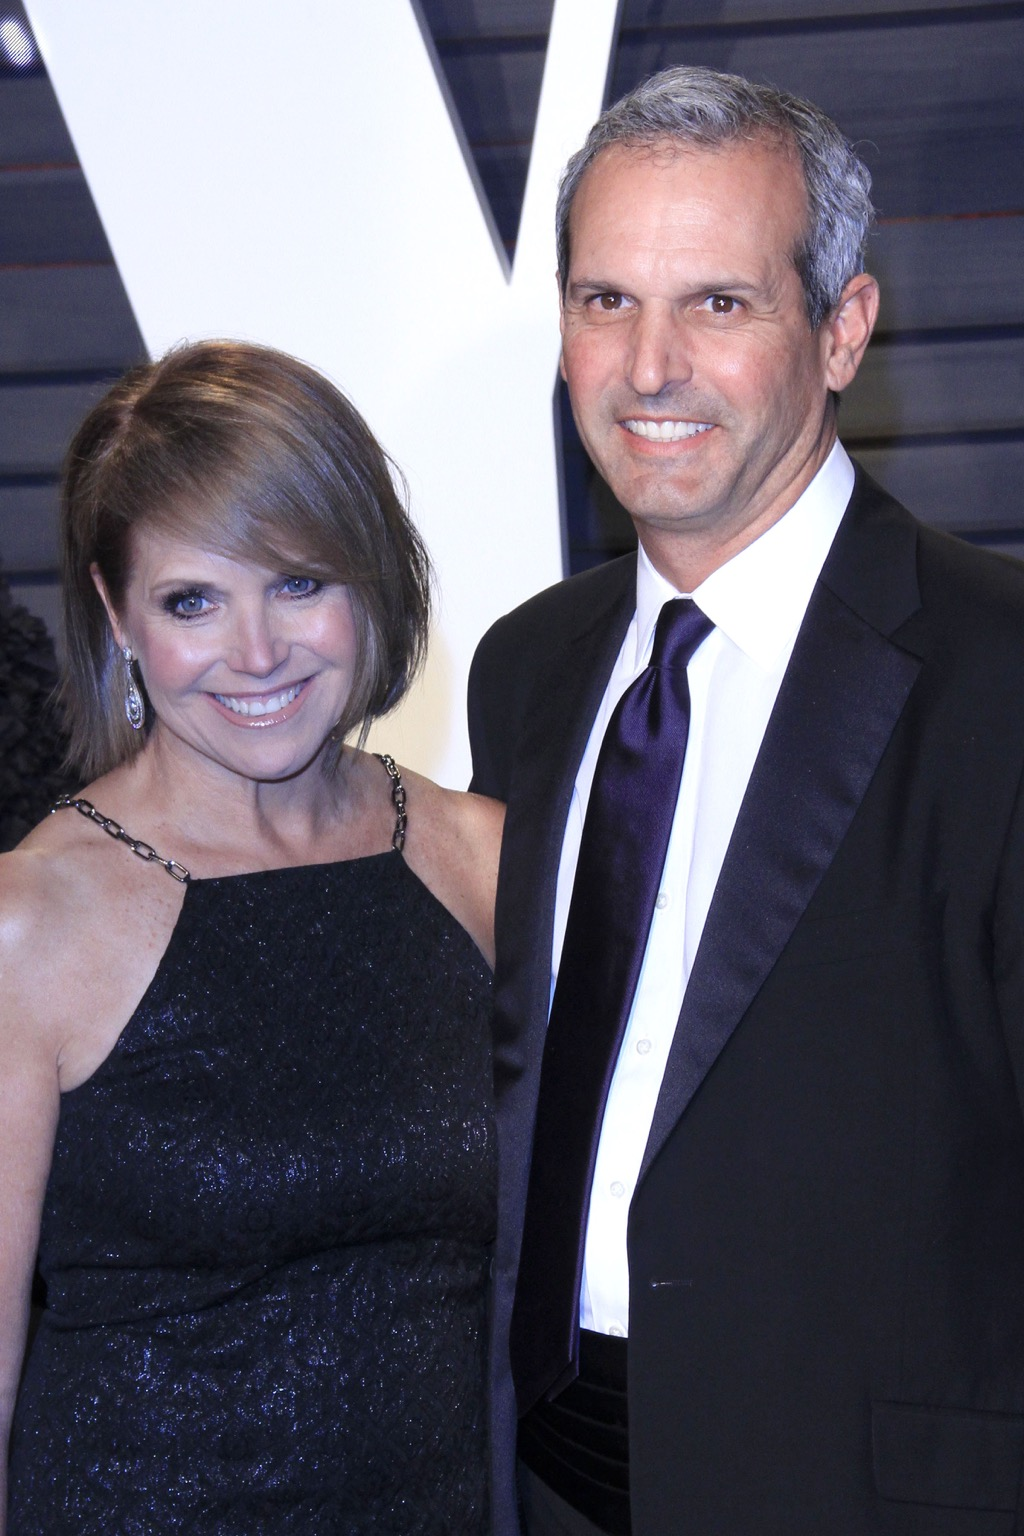 Katie couric happily married reverse age gap